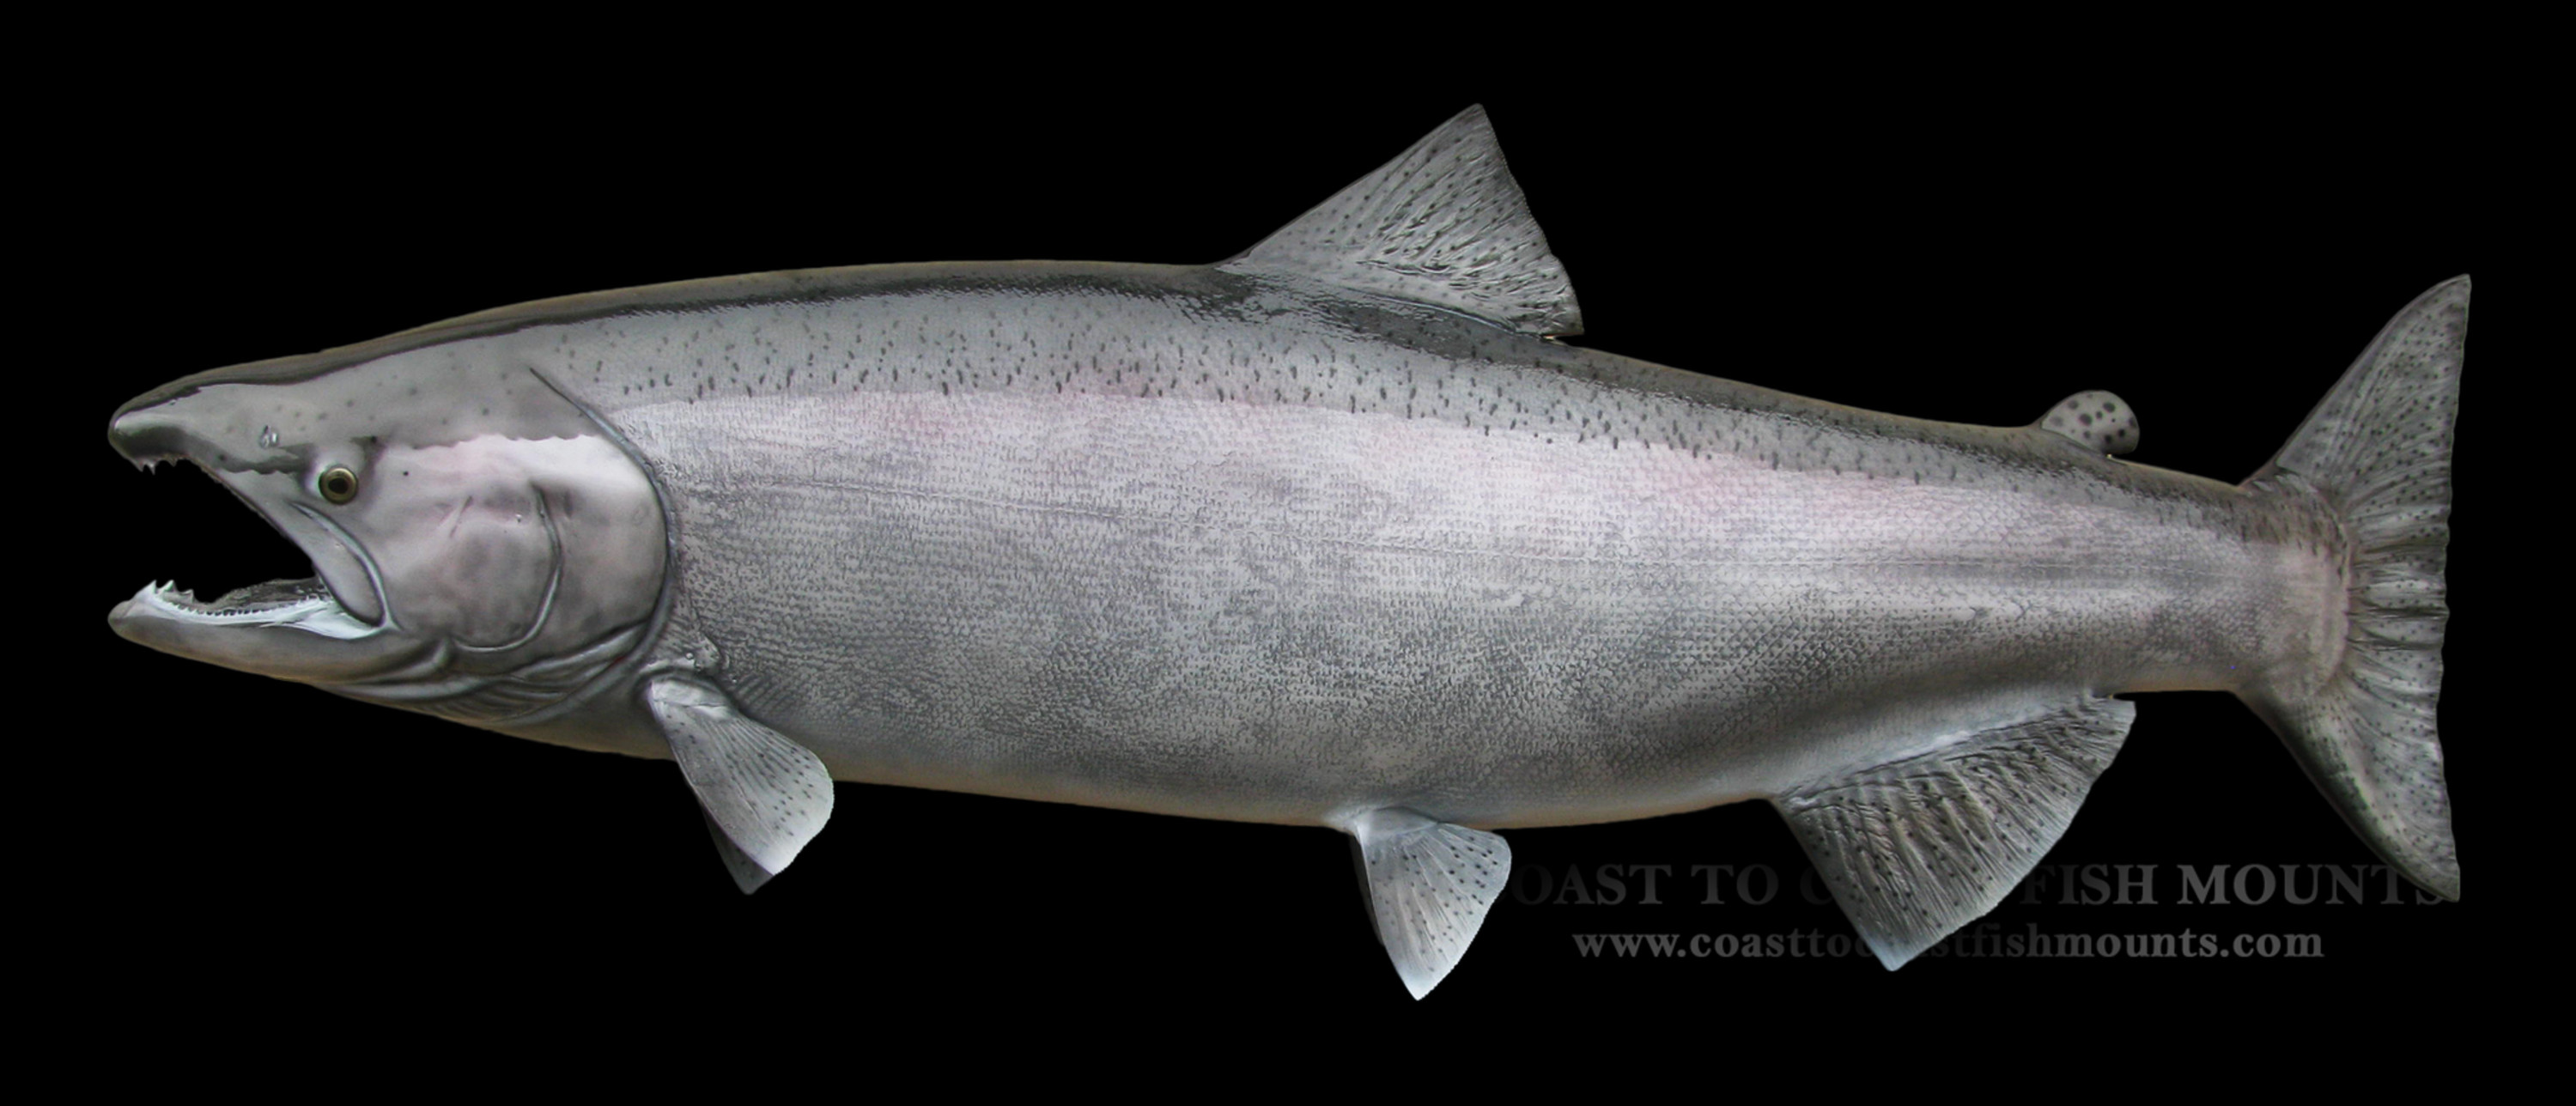 King chinnook salmon fish mount and fish replicas for Replica fish mounts